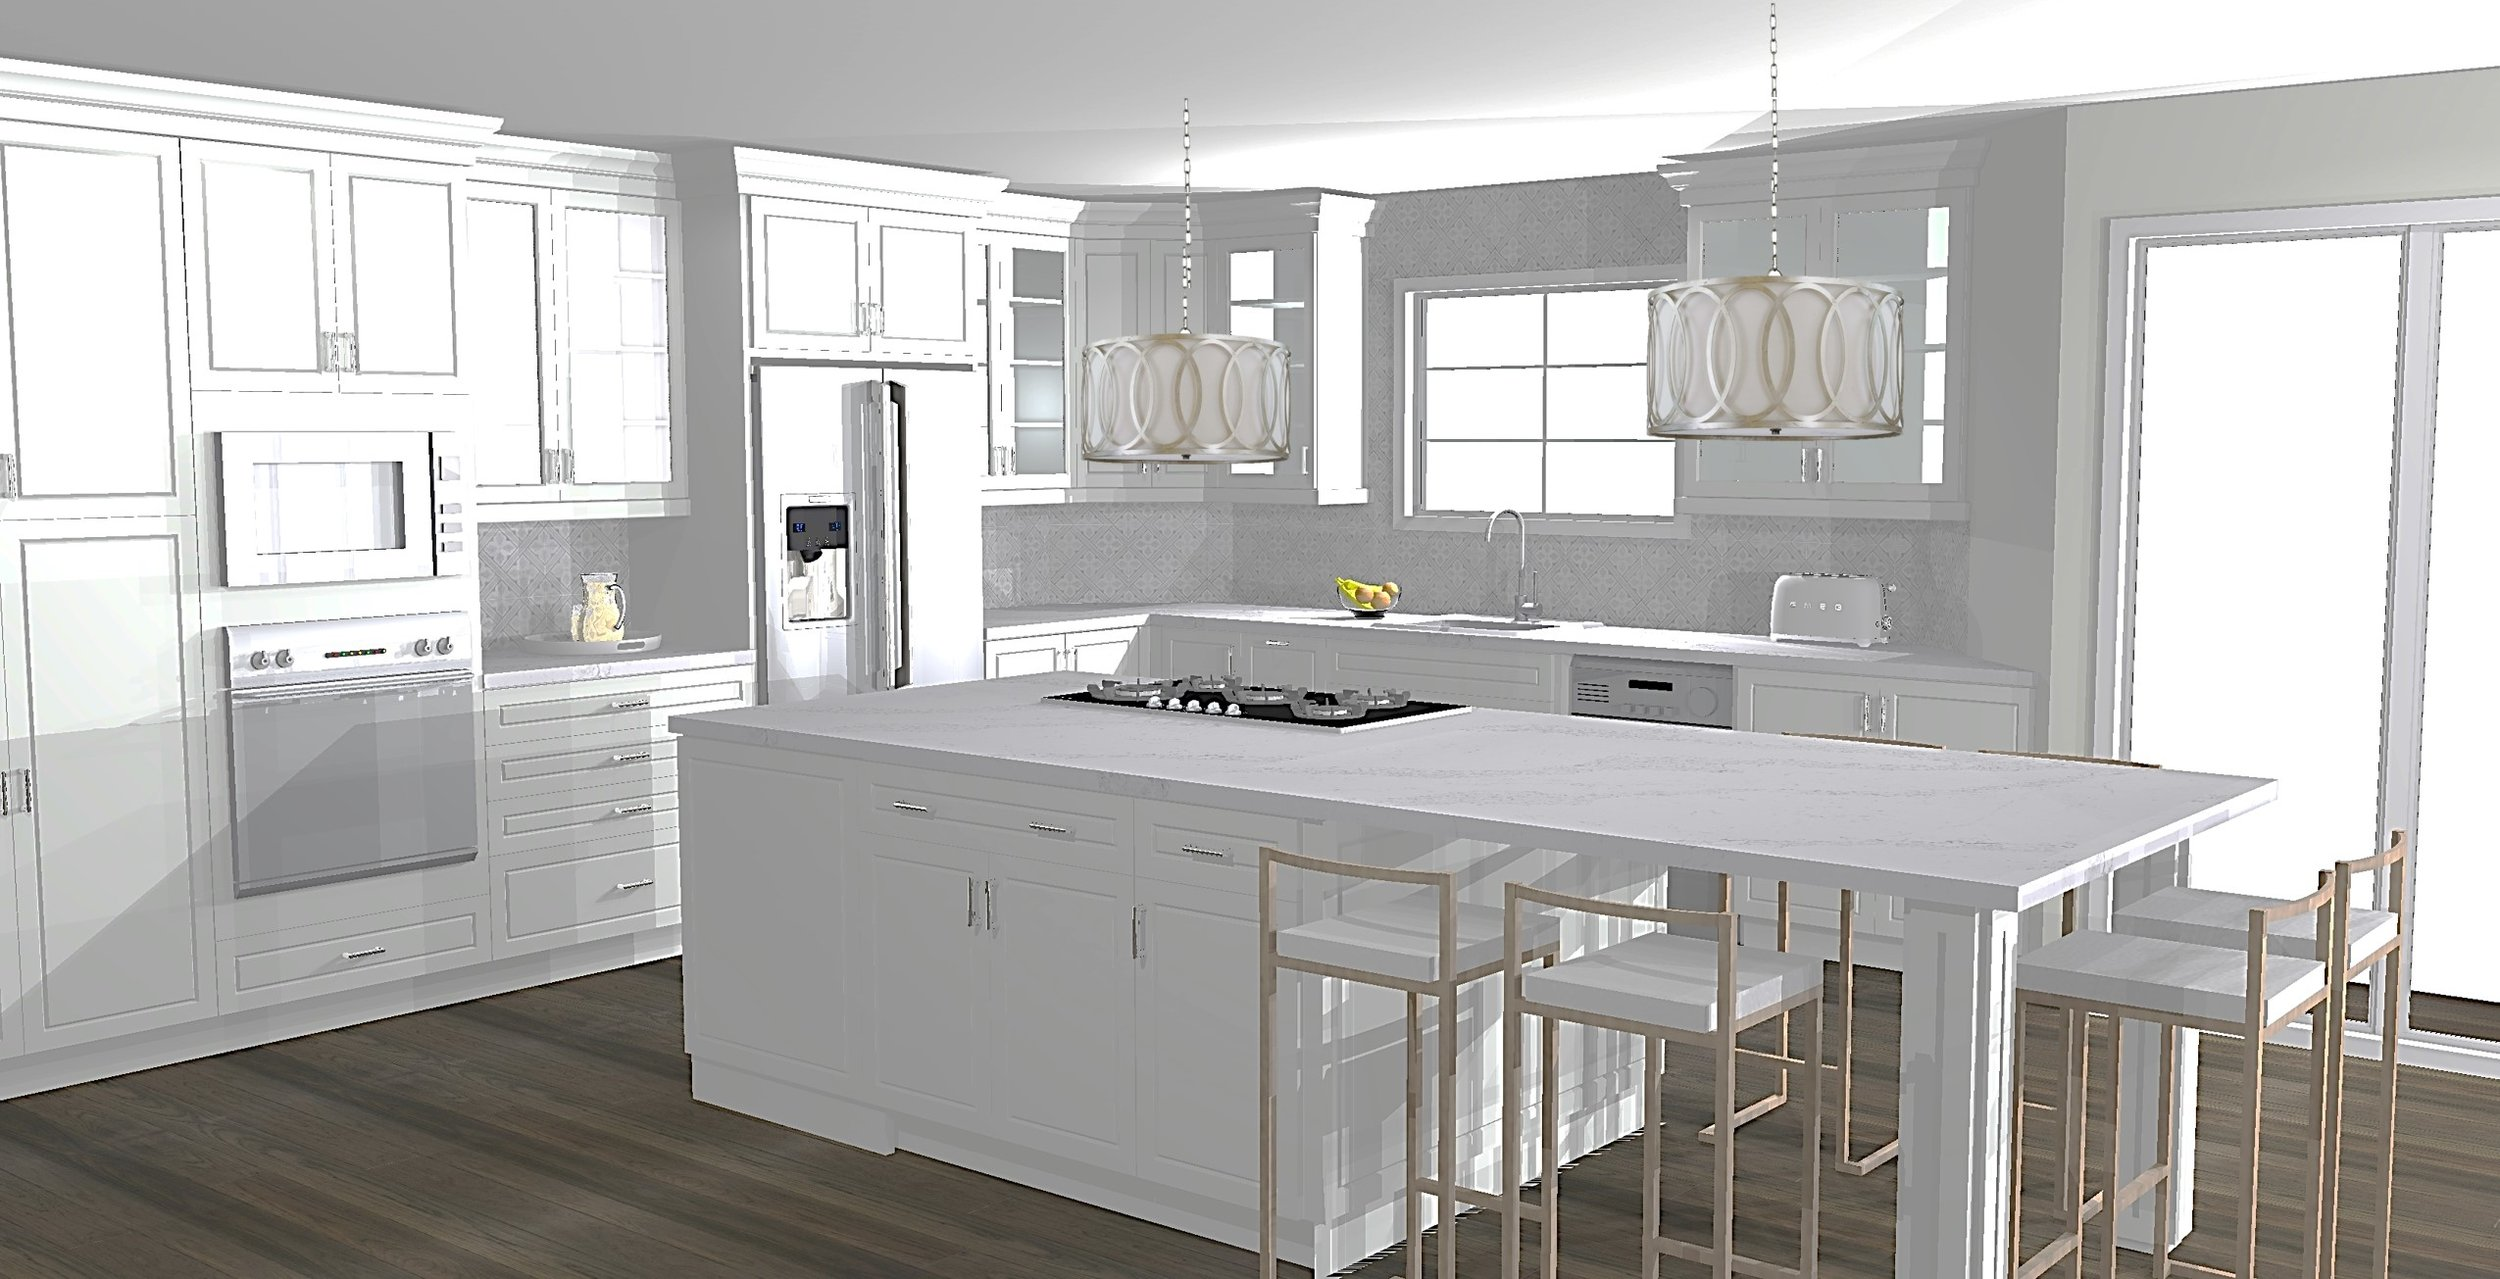 Kitchen Rendering1.jpg